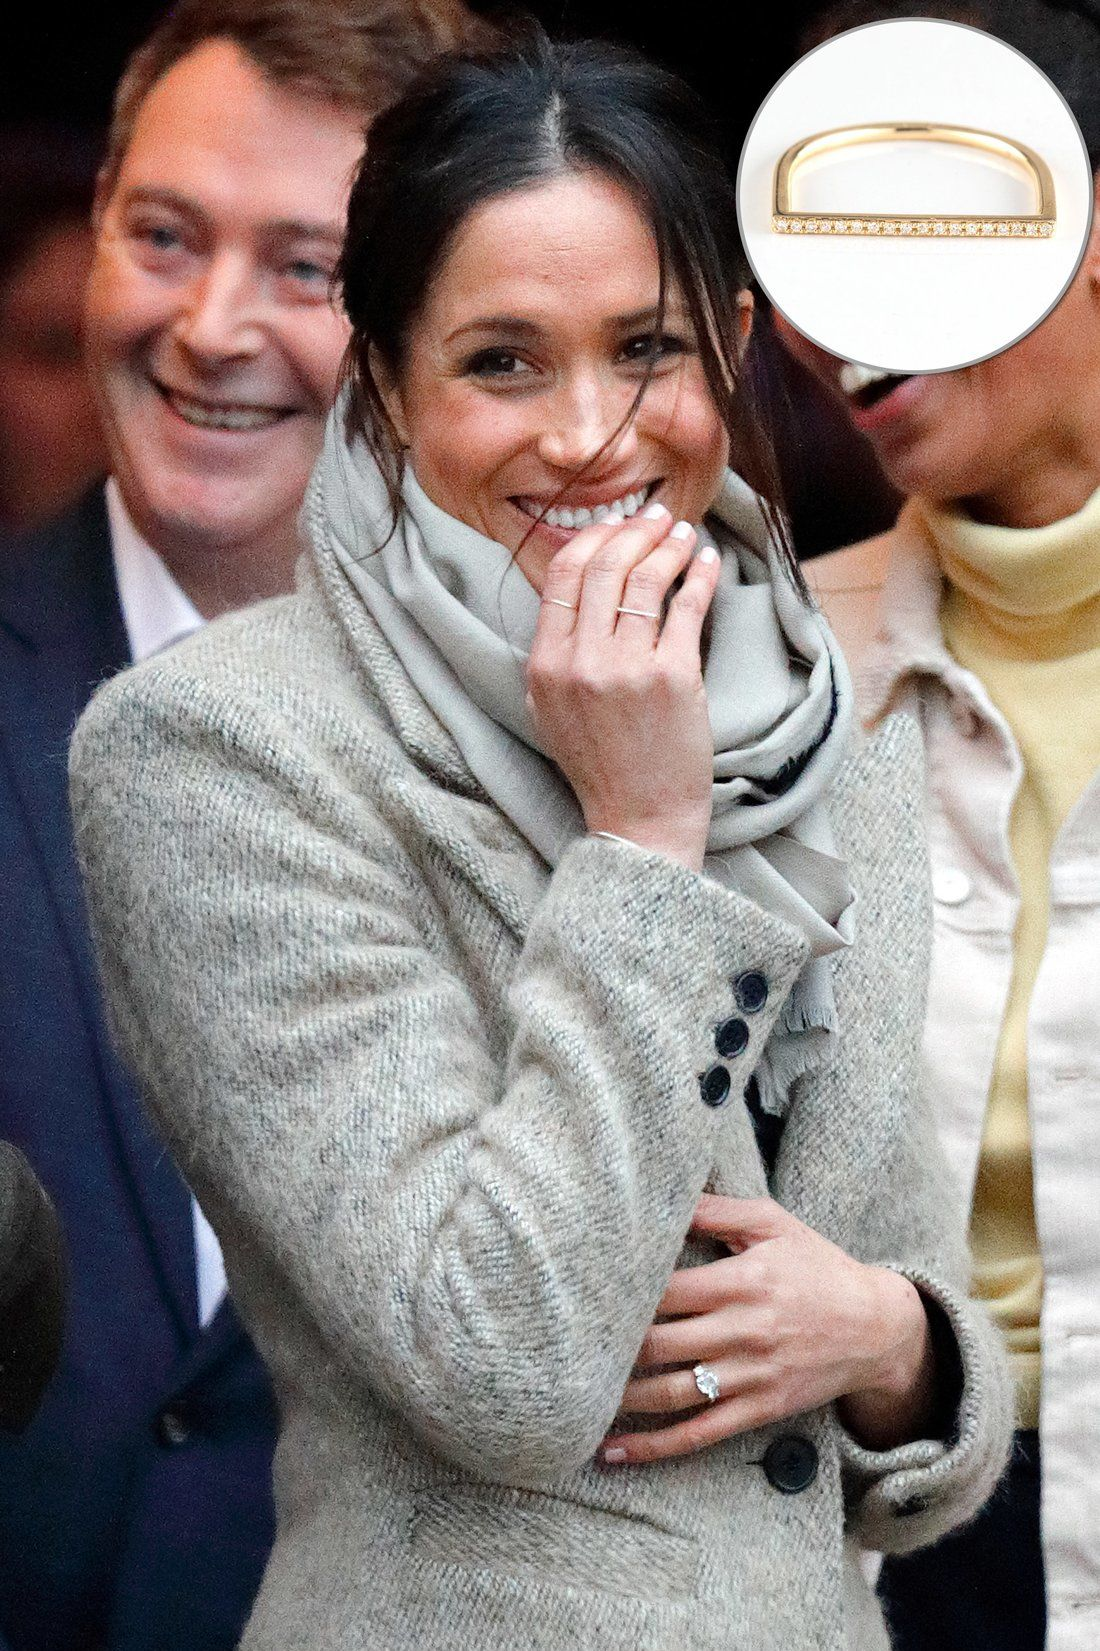 Solving the Mystery Behind Meghan Markle's Other Diamond Ring